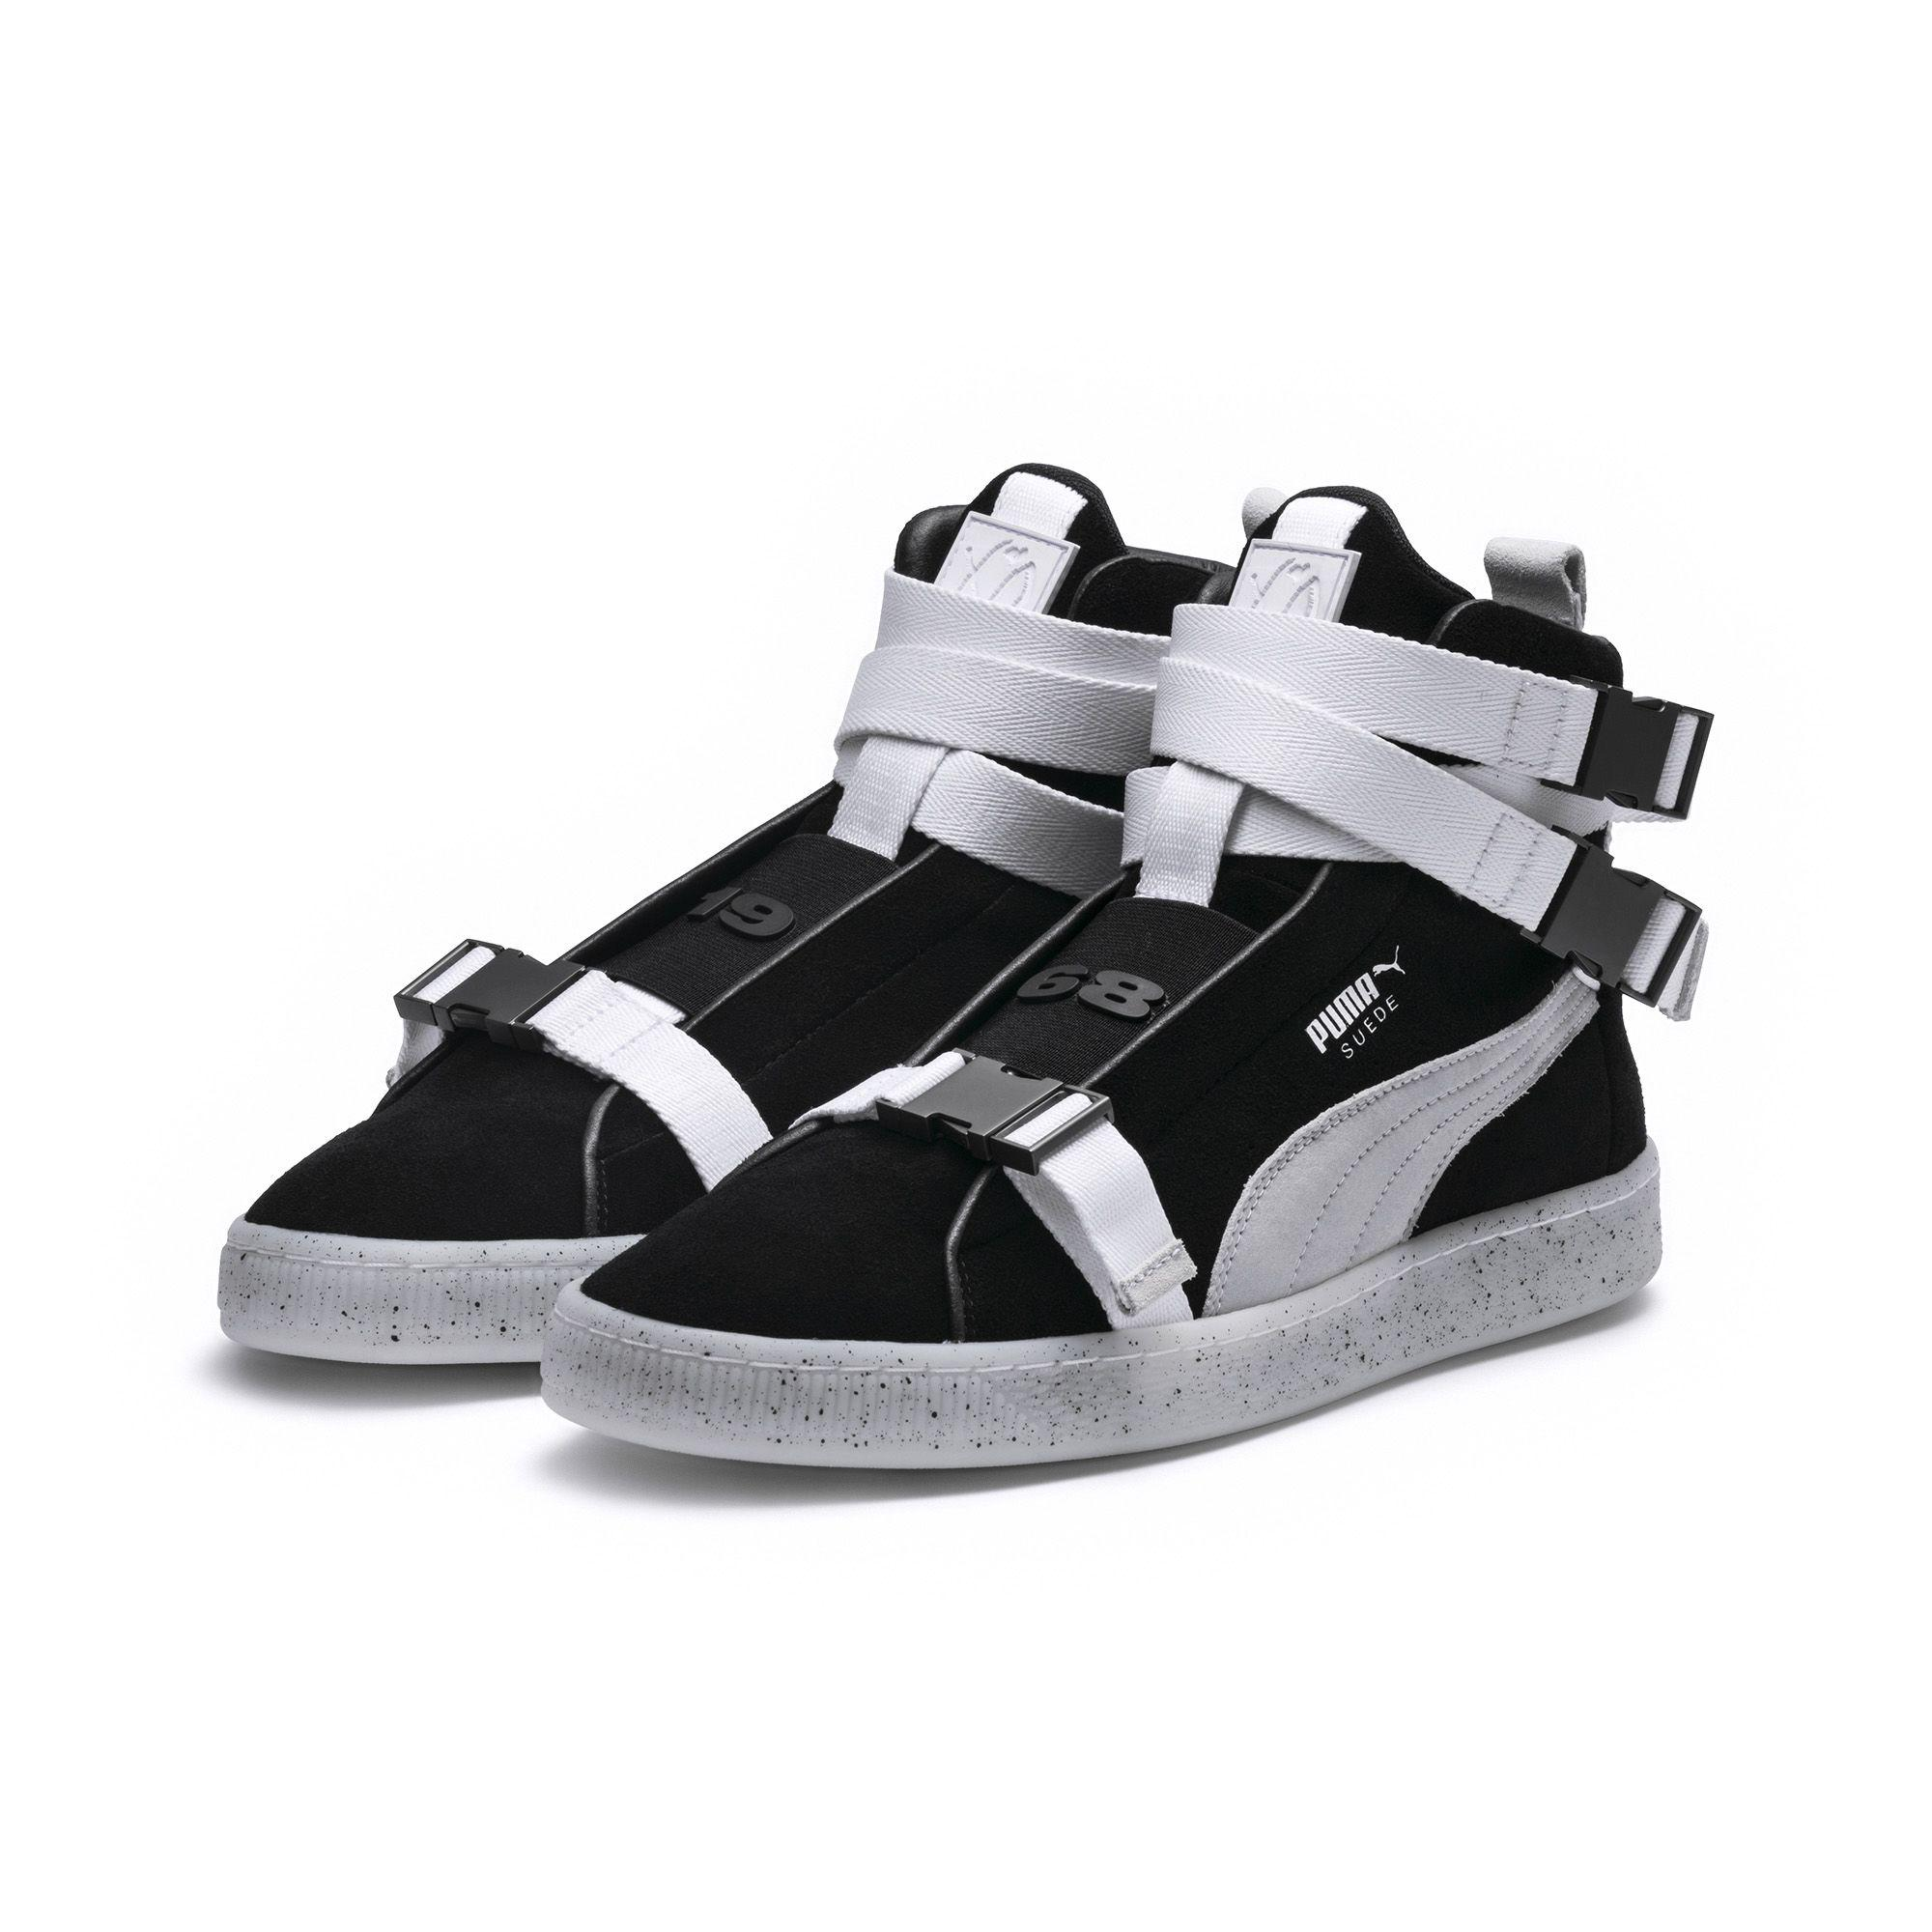 ef68263f2e7 picture of puma suede classic sneakers black wide varieties 8349c ...